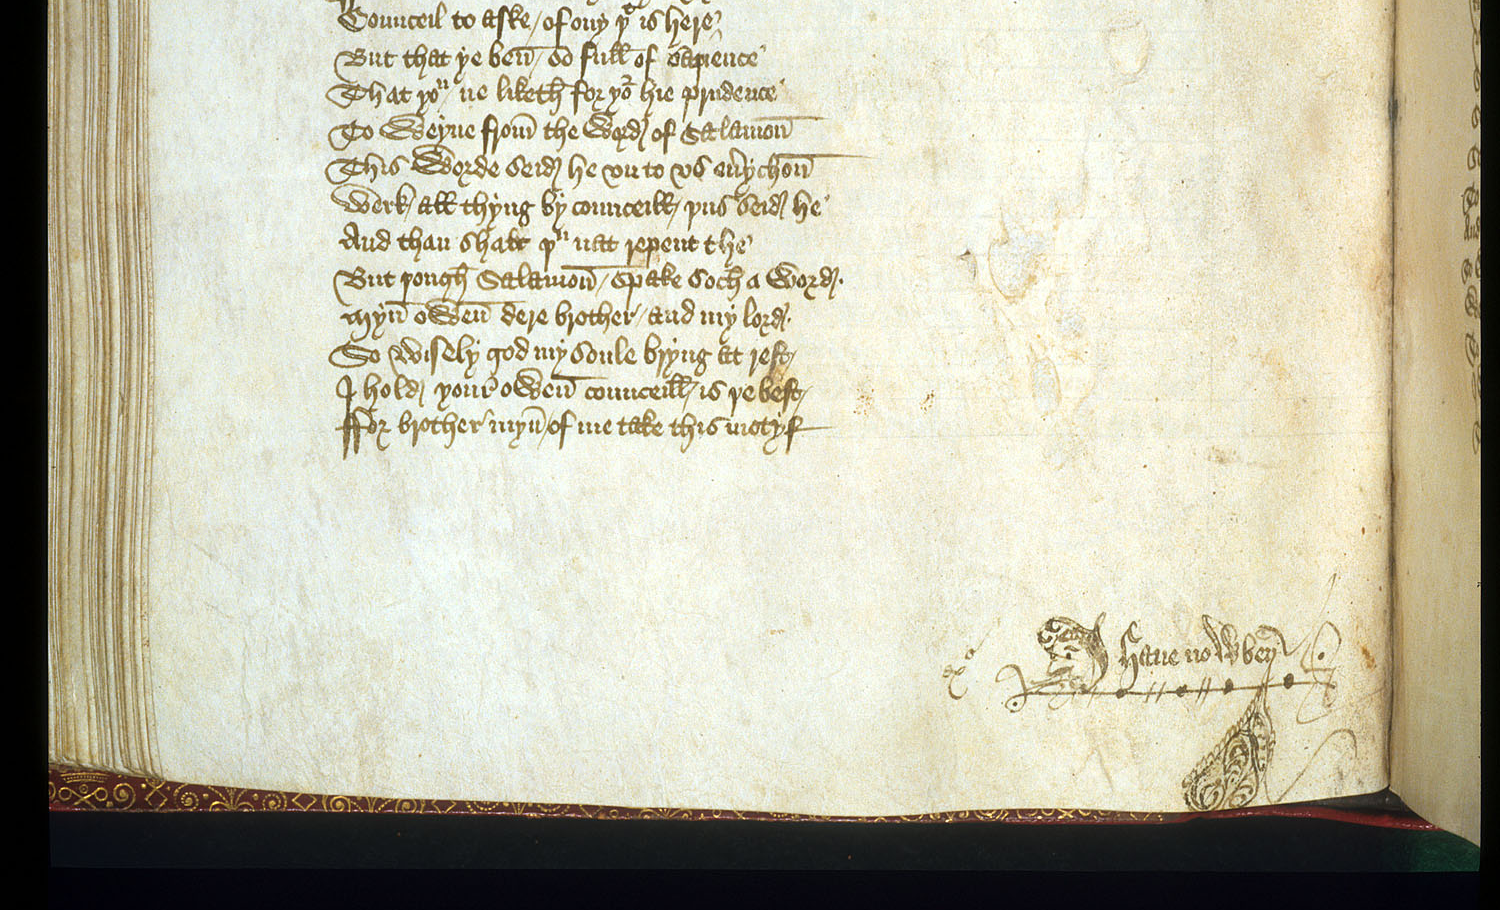 Richiamo in BL Egerton MS 2726, f. 126v. British Library, [Public Domain], CC0 1.0 Universal (CC0 1.0)